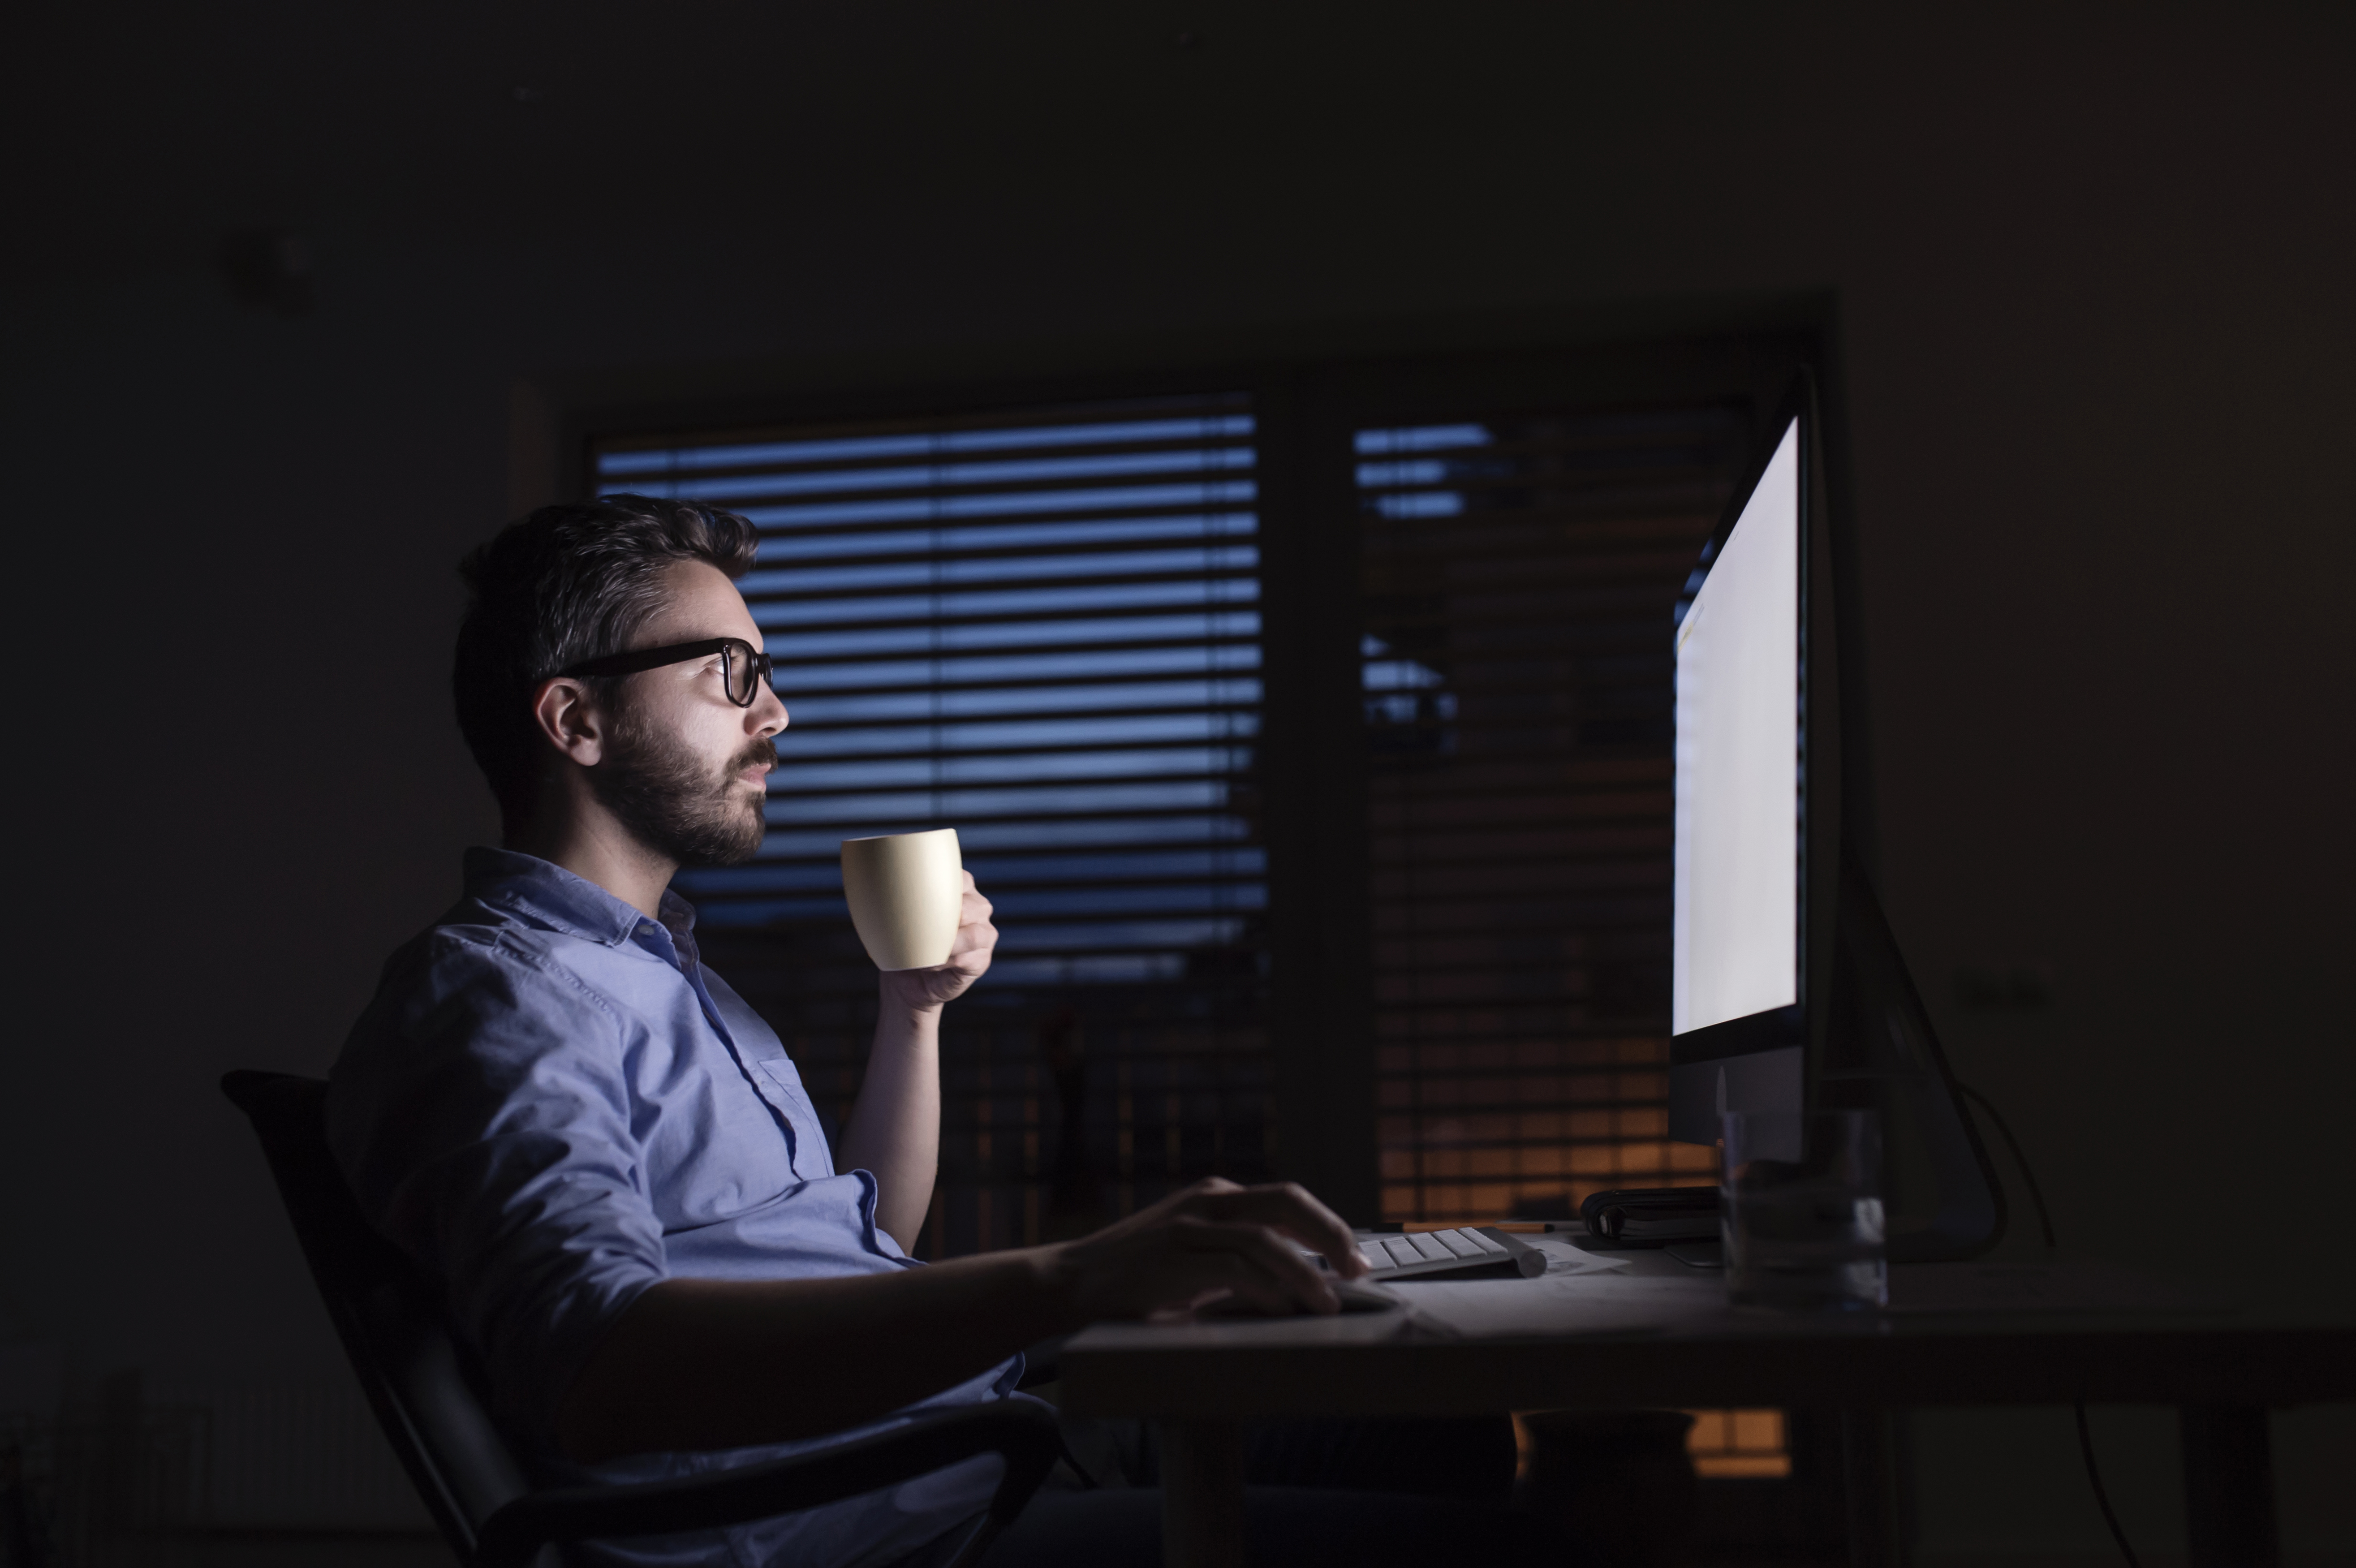 Man working at computer and drinking coffee at night